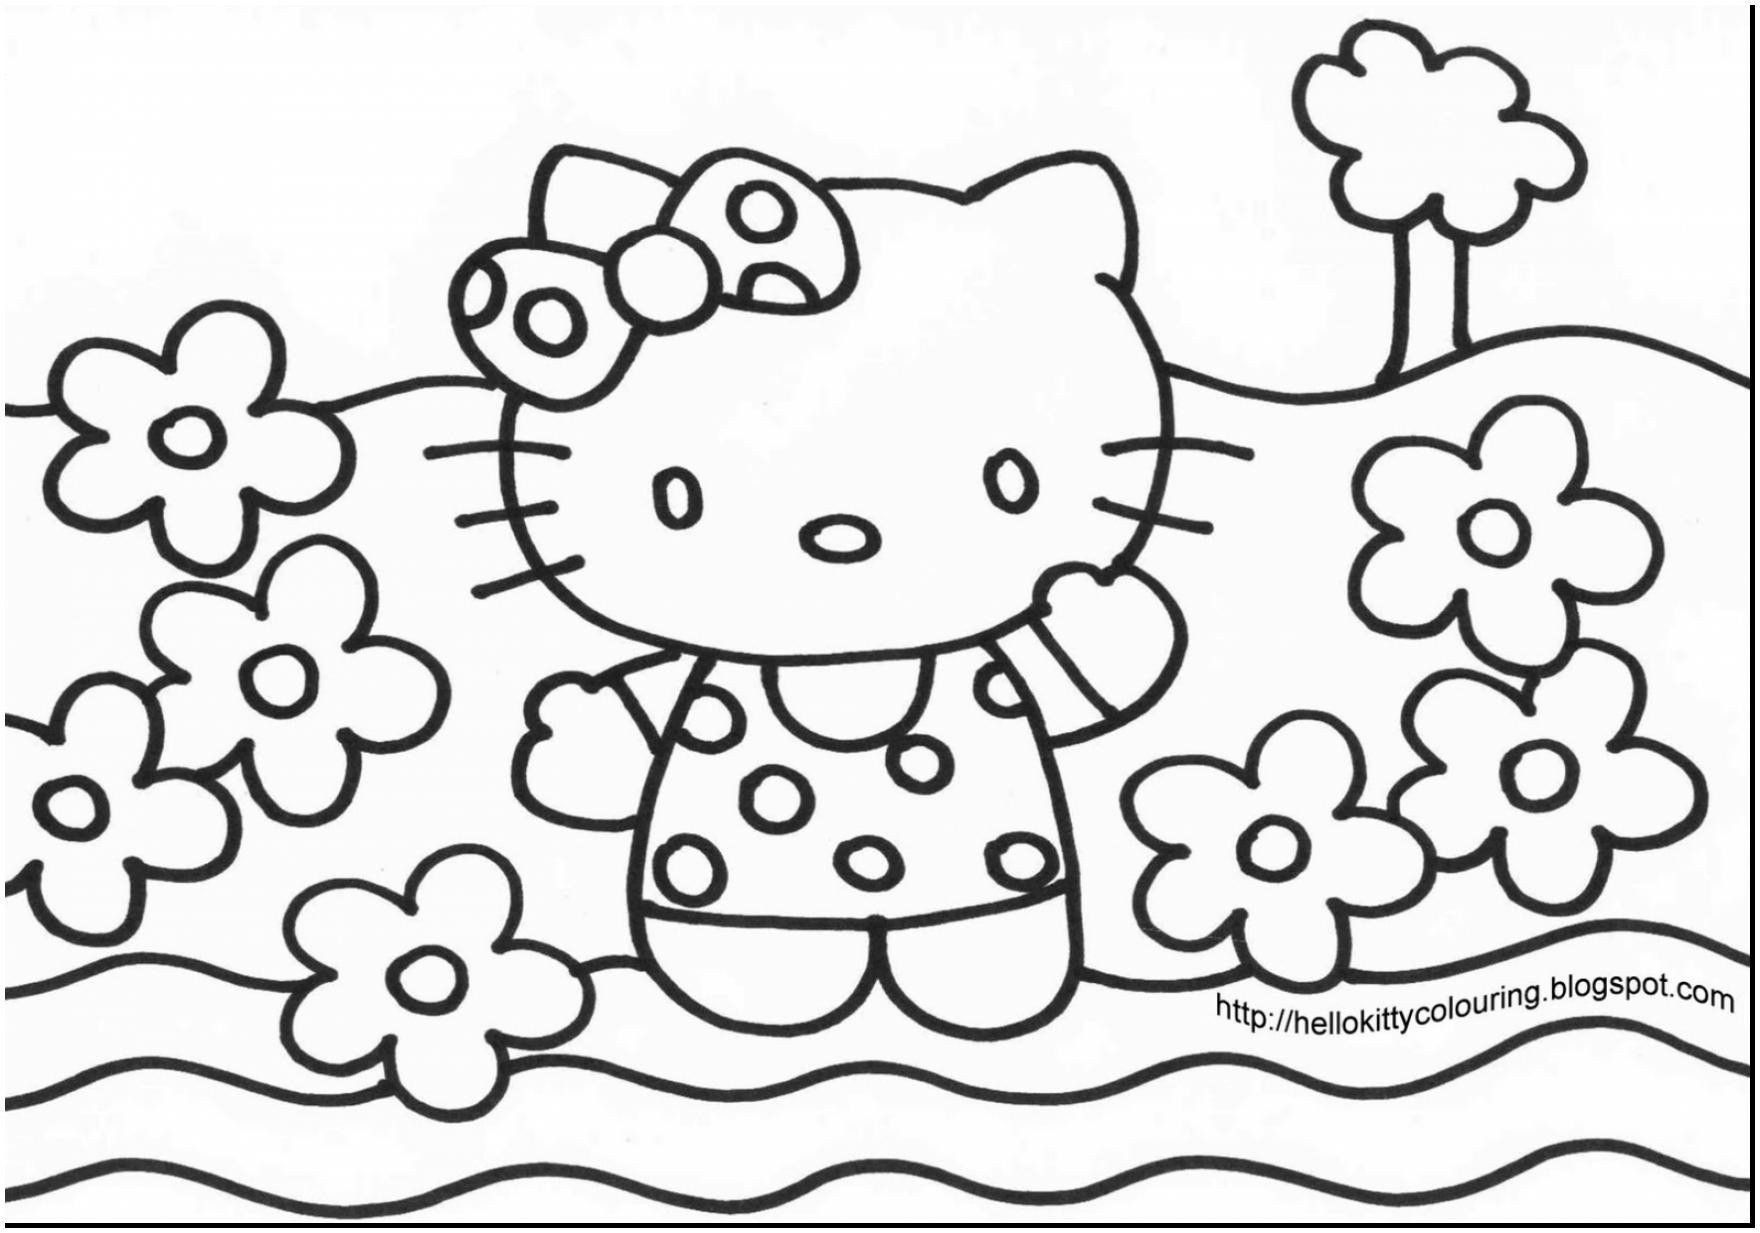 Hello Kitty Coloring Book Beautiful Lovely Free Coloring Pages Hello Kitty Hello Kitty Coloring Hello Kitty Colouring Pages Kitty Coloring